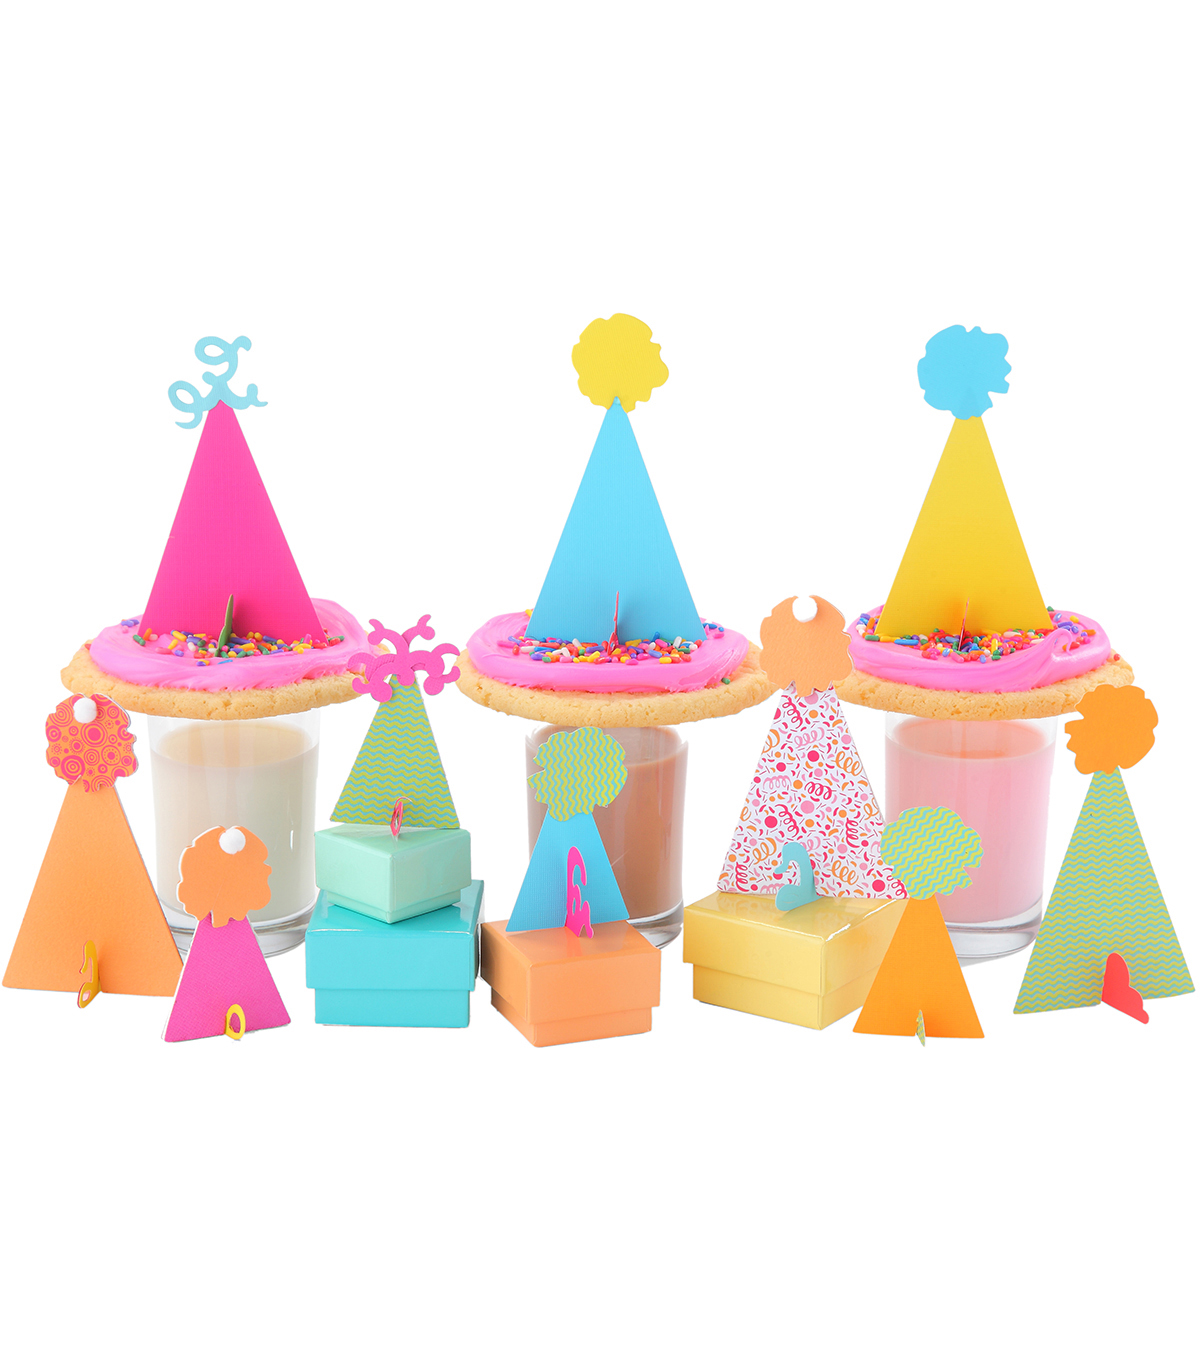 Sizzix Bigz Where Women Cook 3-D Die-Party Hats